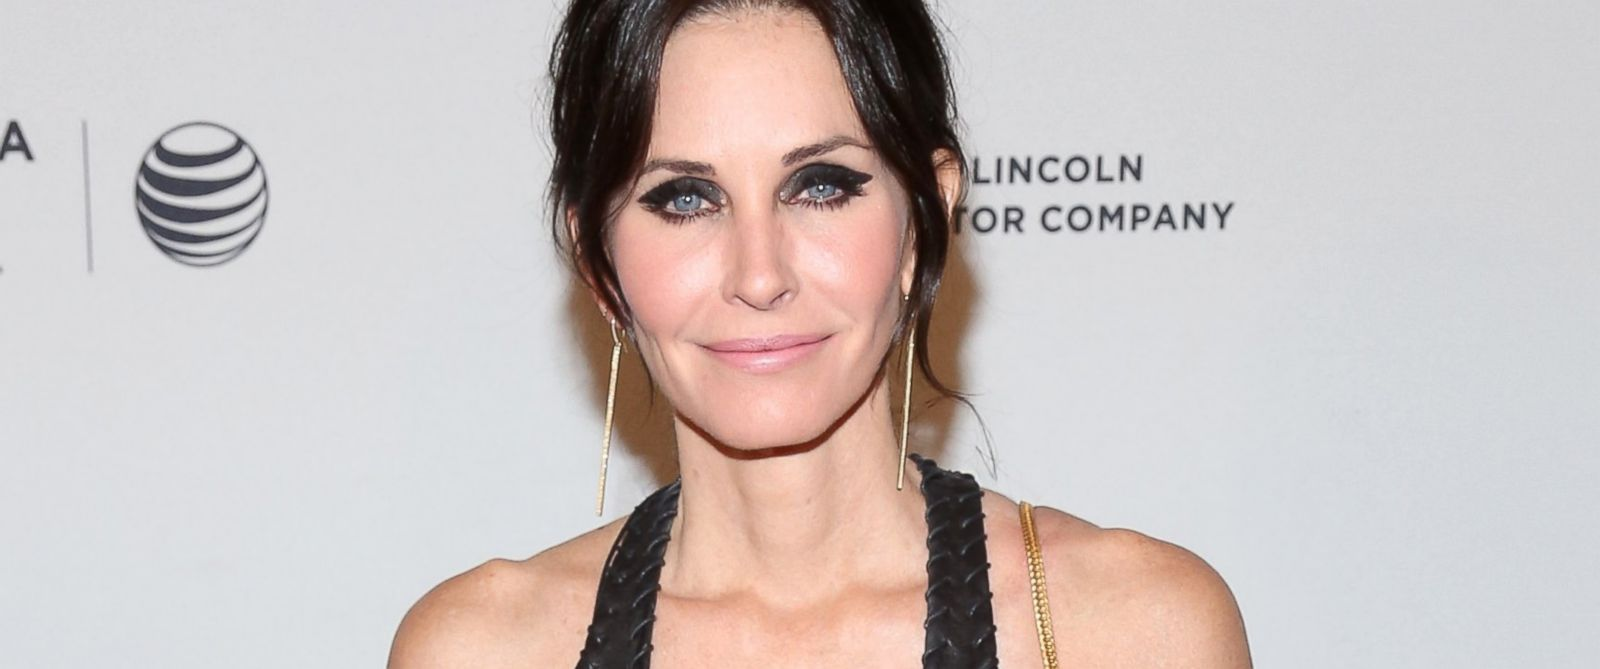 GTY_courteney_cox_kab_140617_31x13_1600